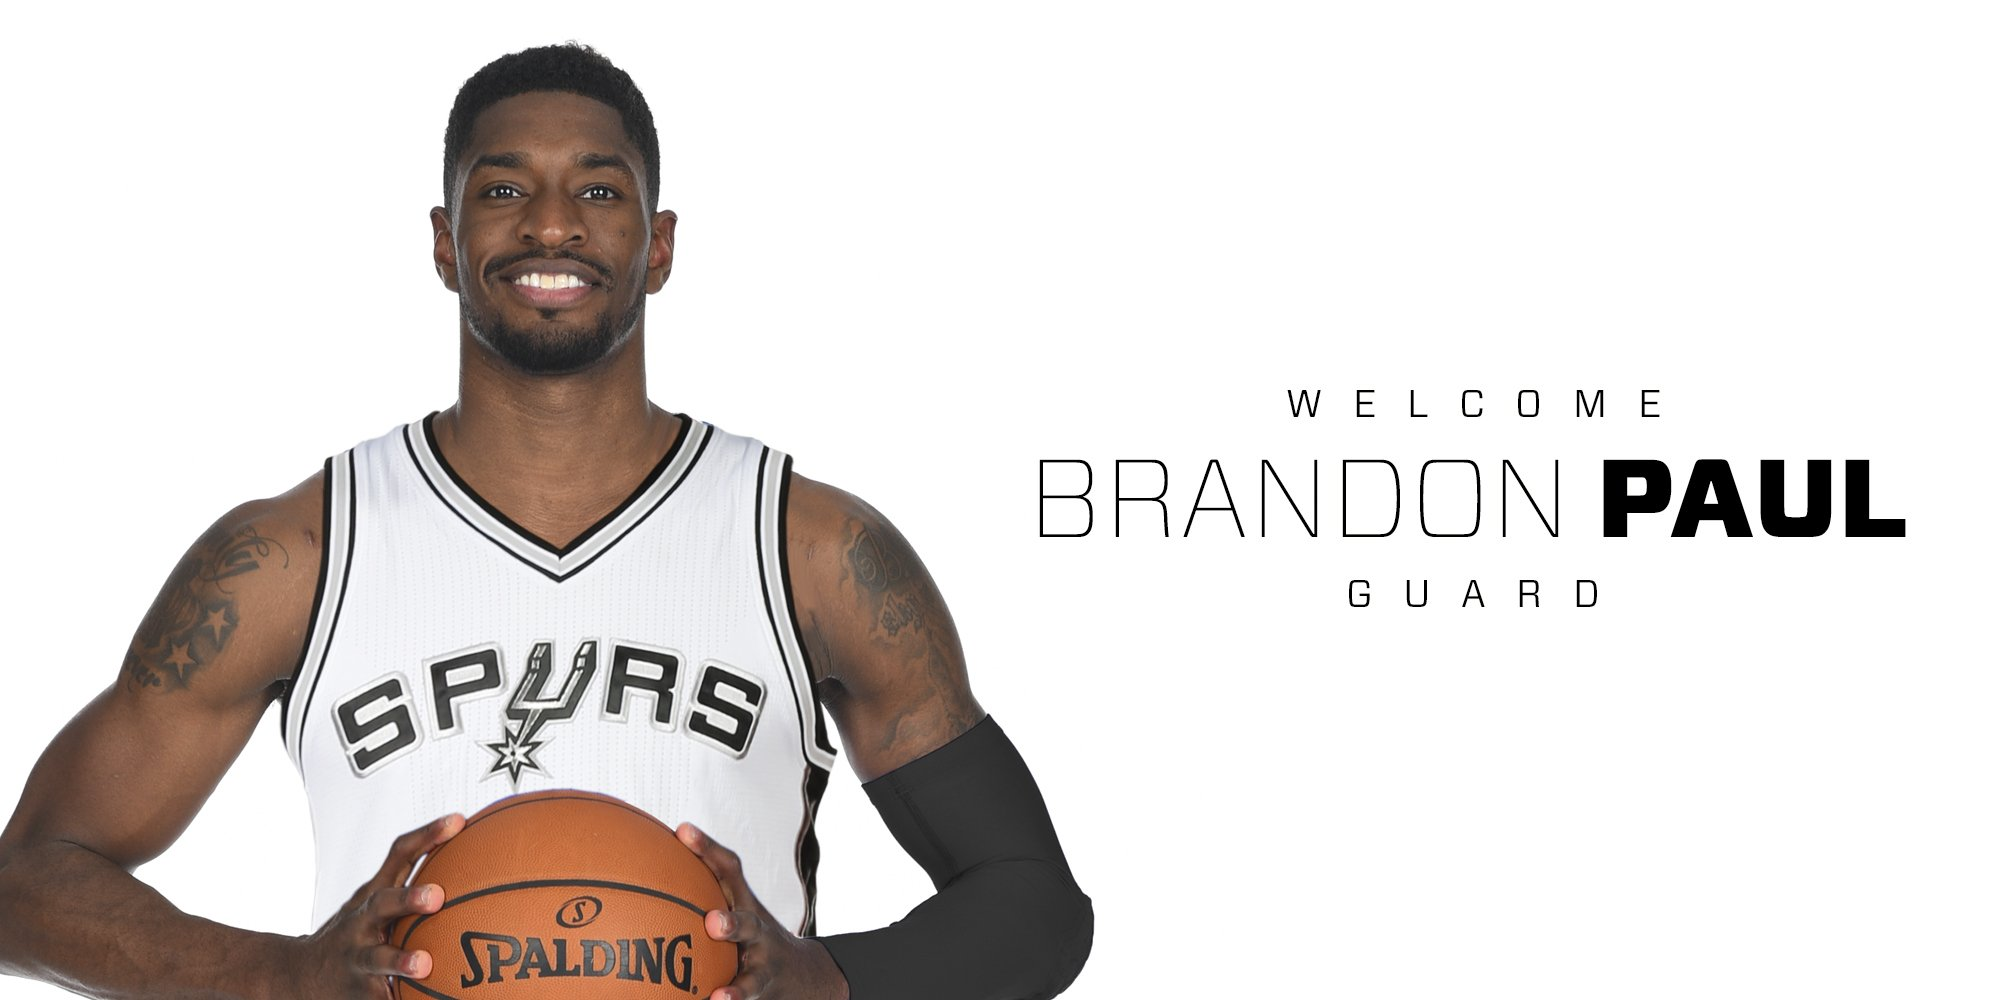 We've signed Brandon Paul » https://t.co/HKry3VFJMr  Welcome to the #SpursFamily, @BP3! https://t.co/e0PQ6Sw3cu